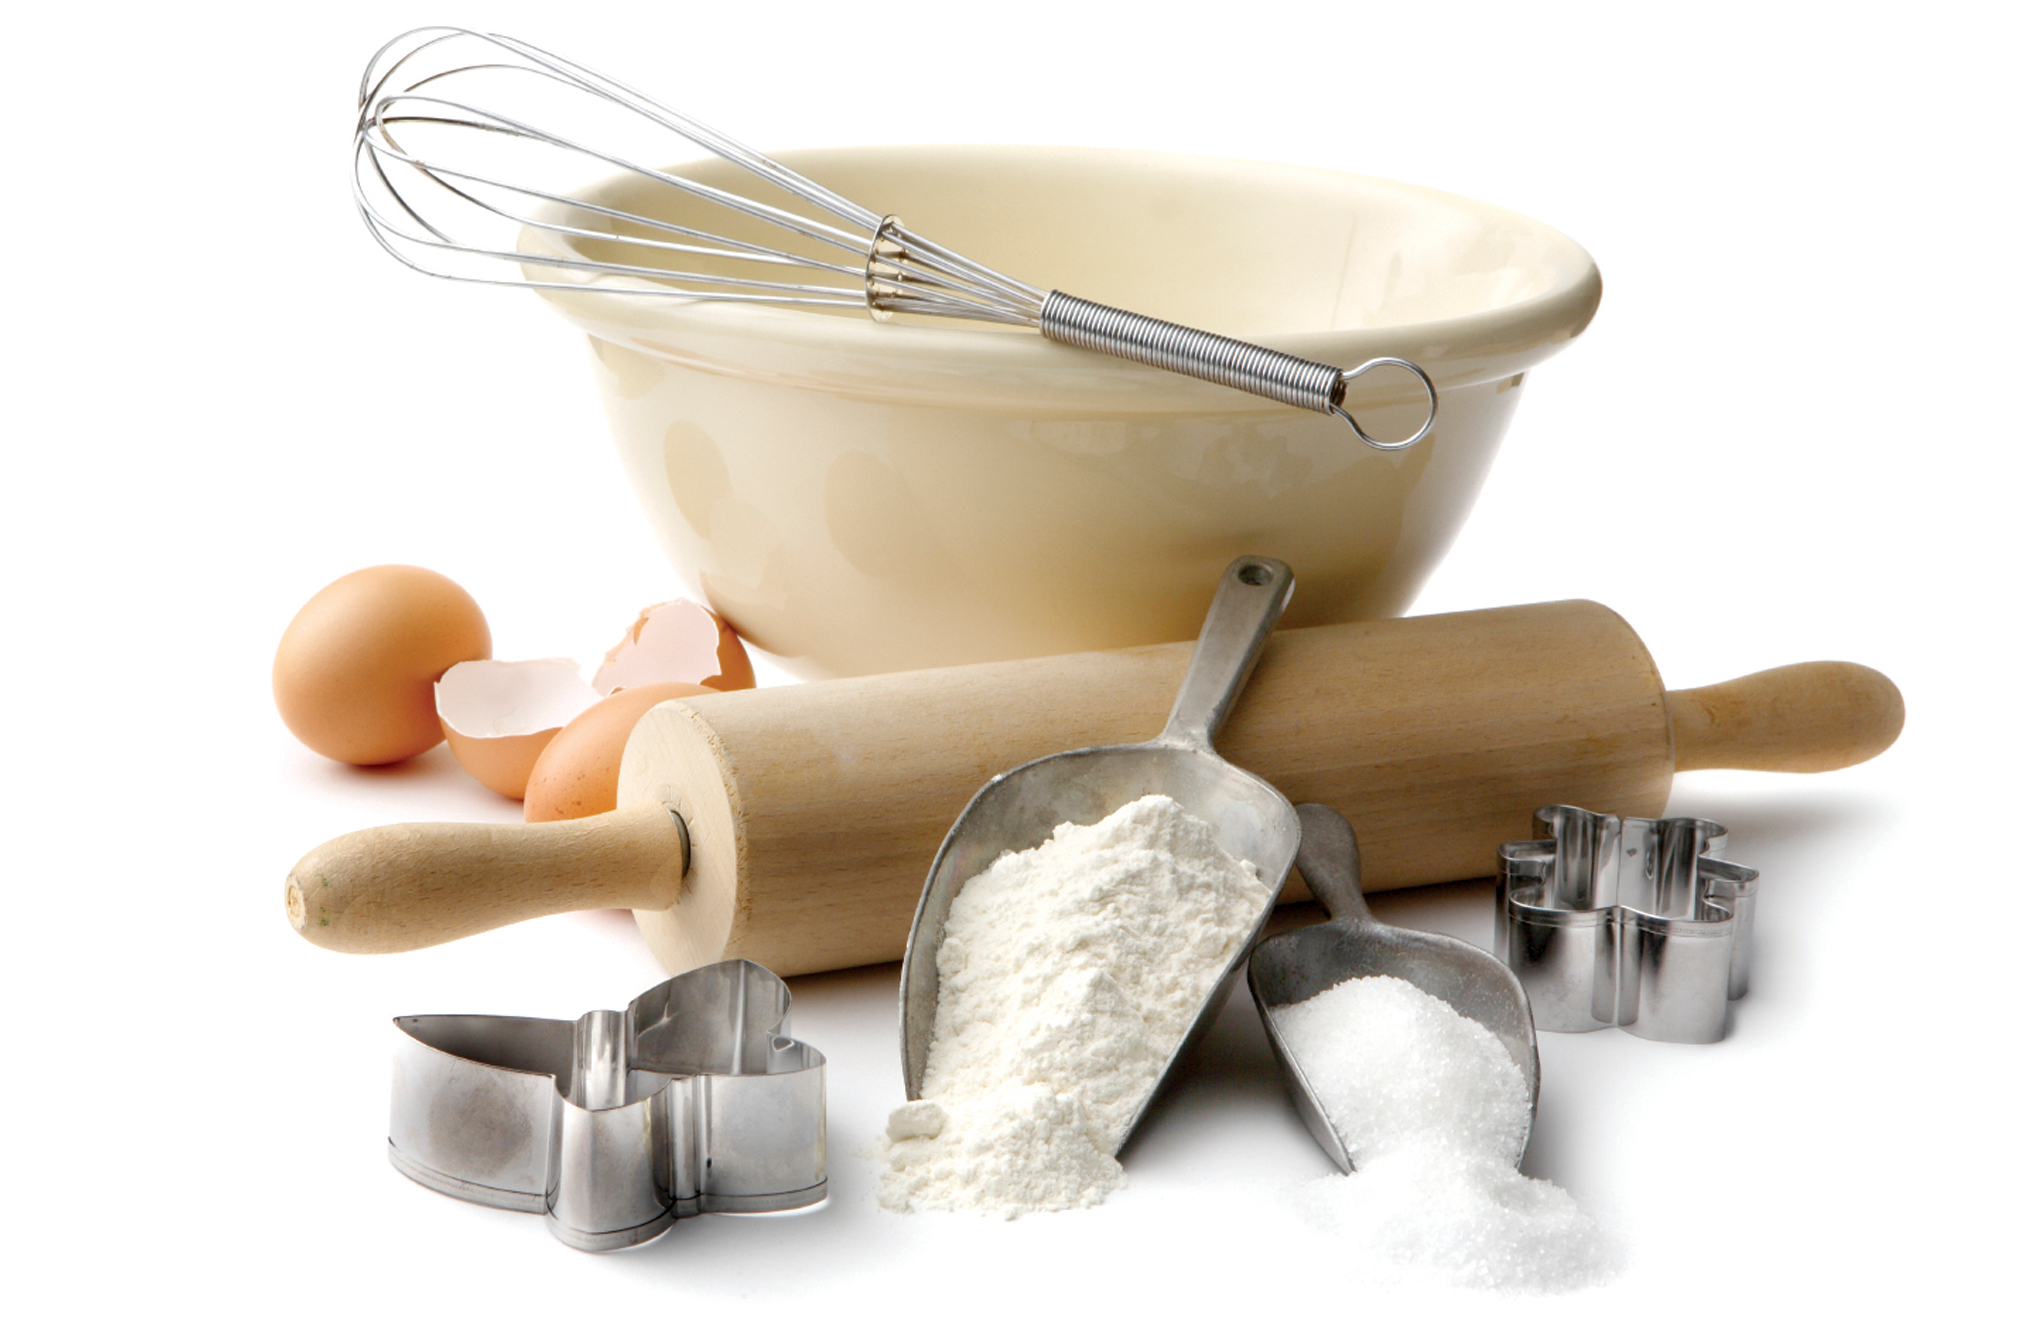 Baking Equipment Clipart - Clipart Suggest